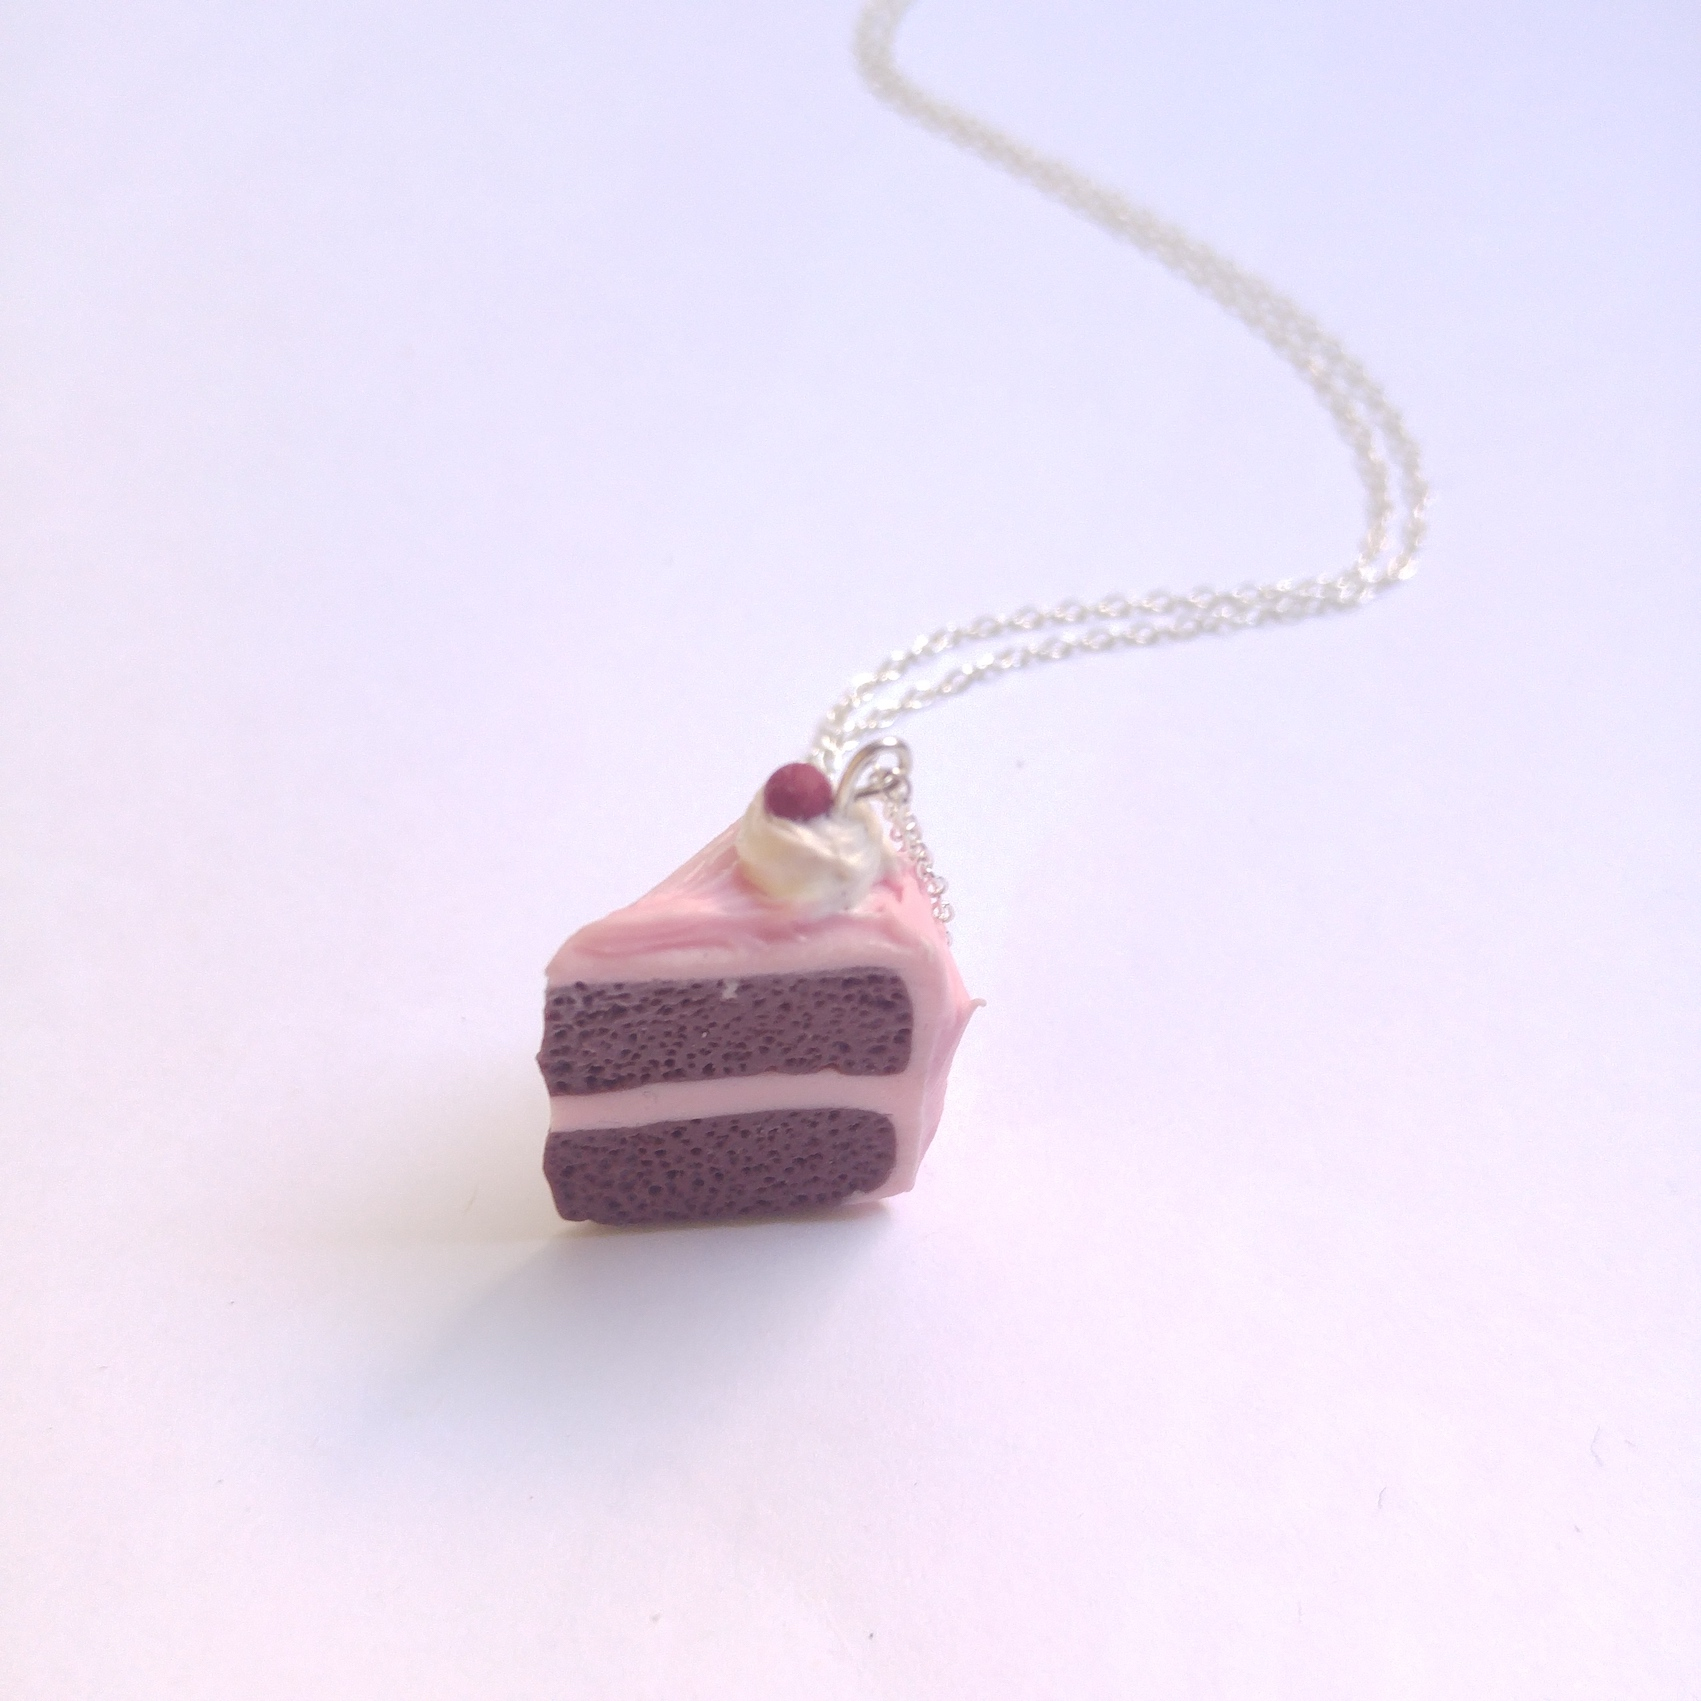 Cake Necklaces